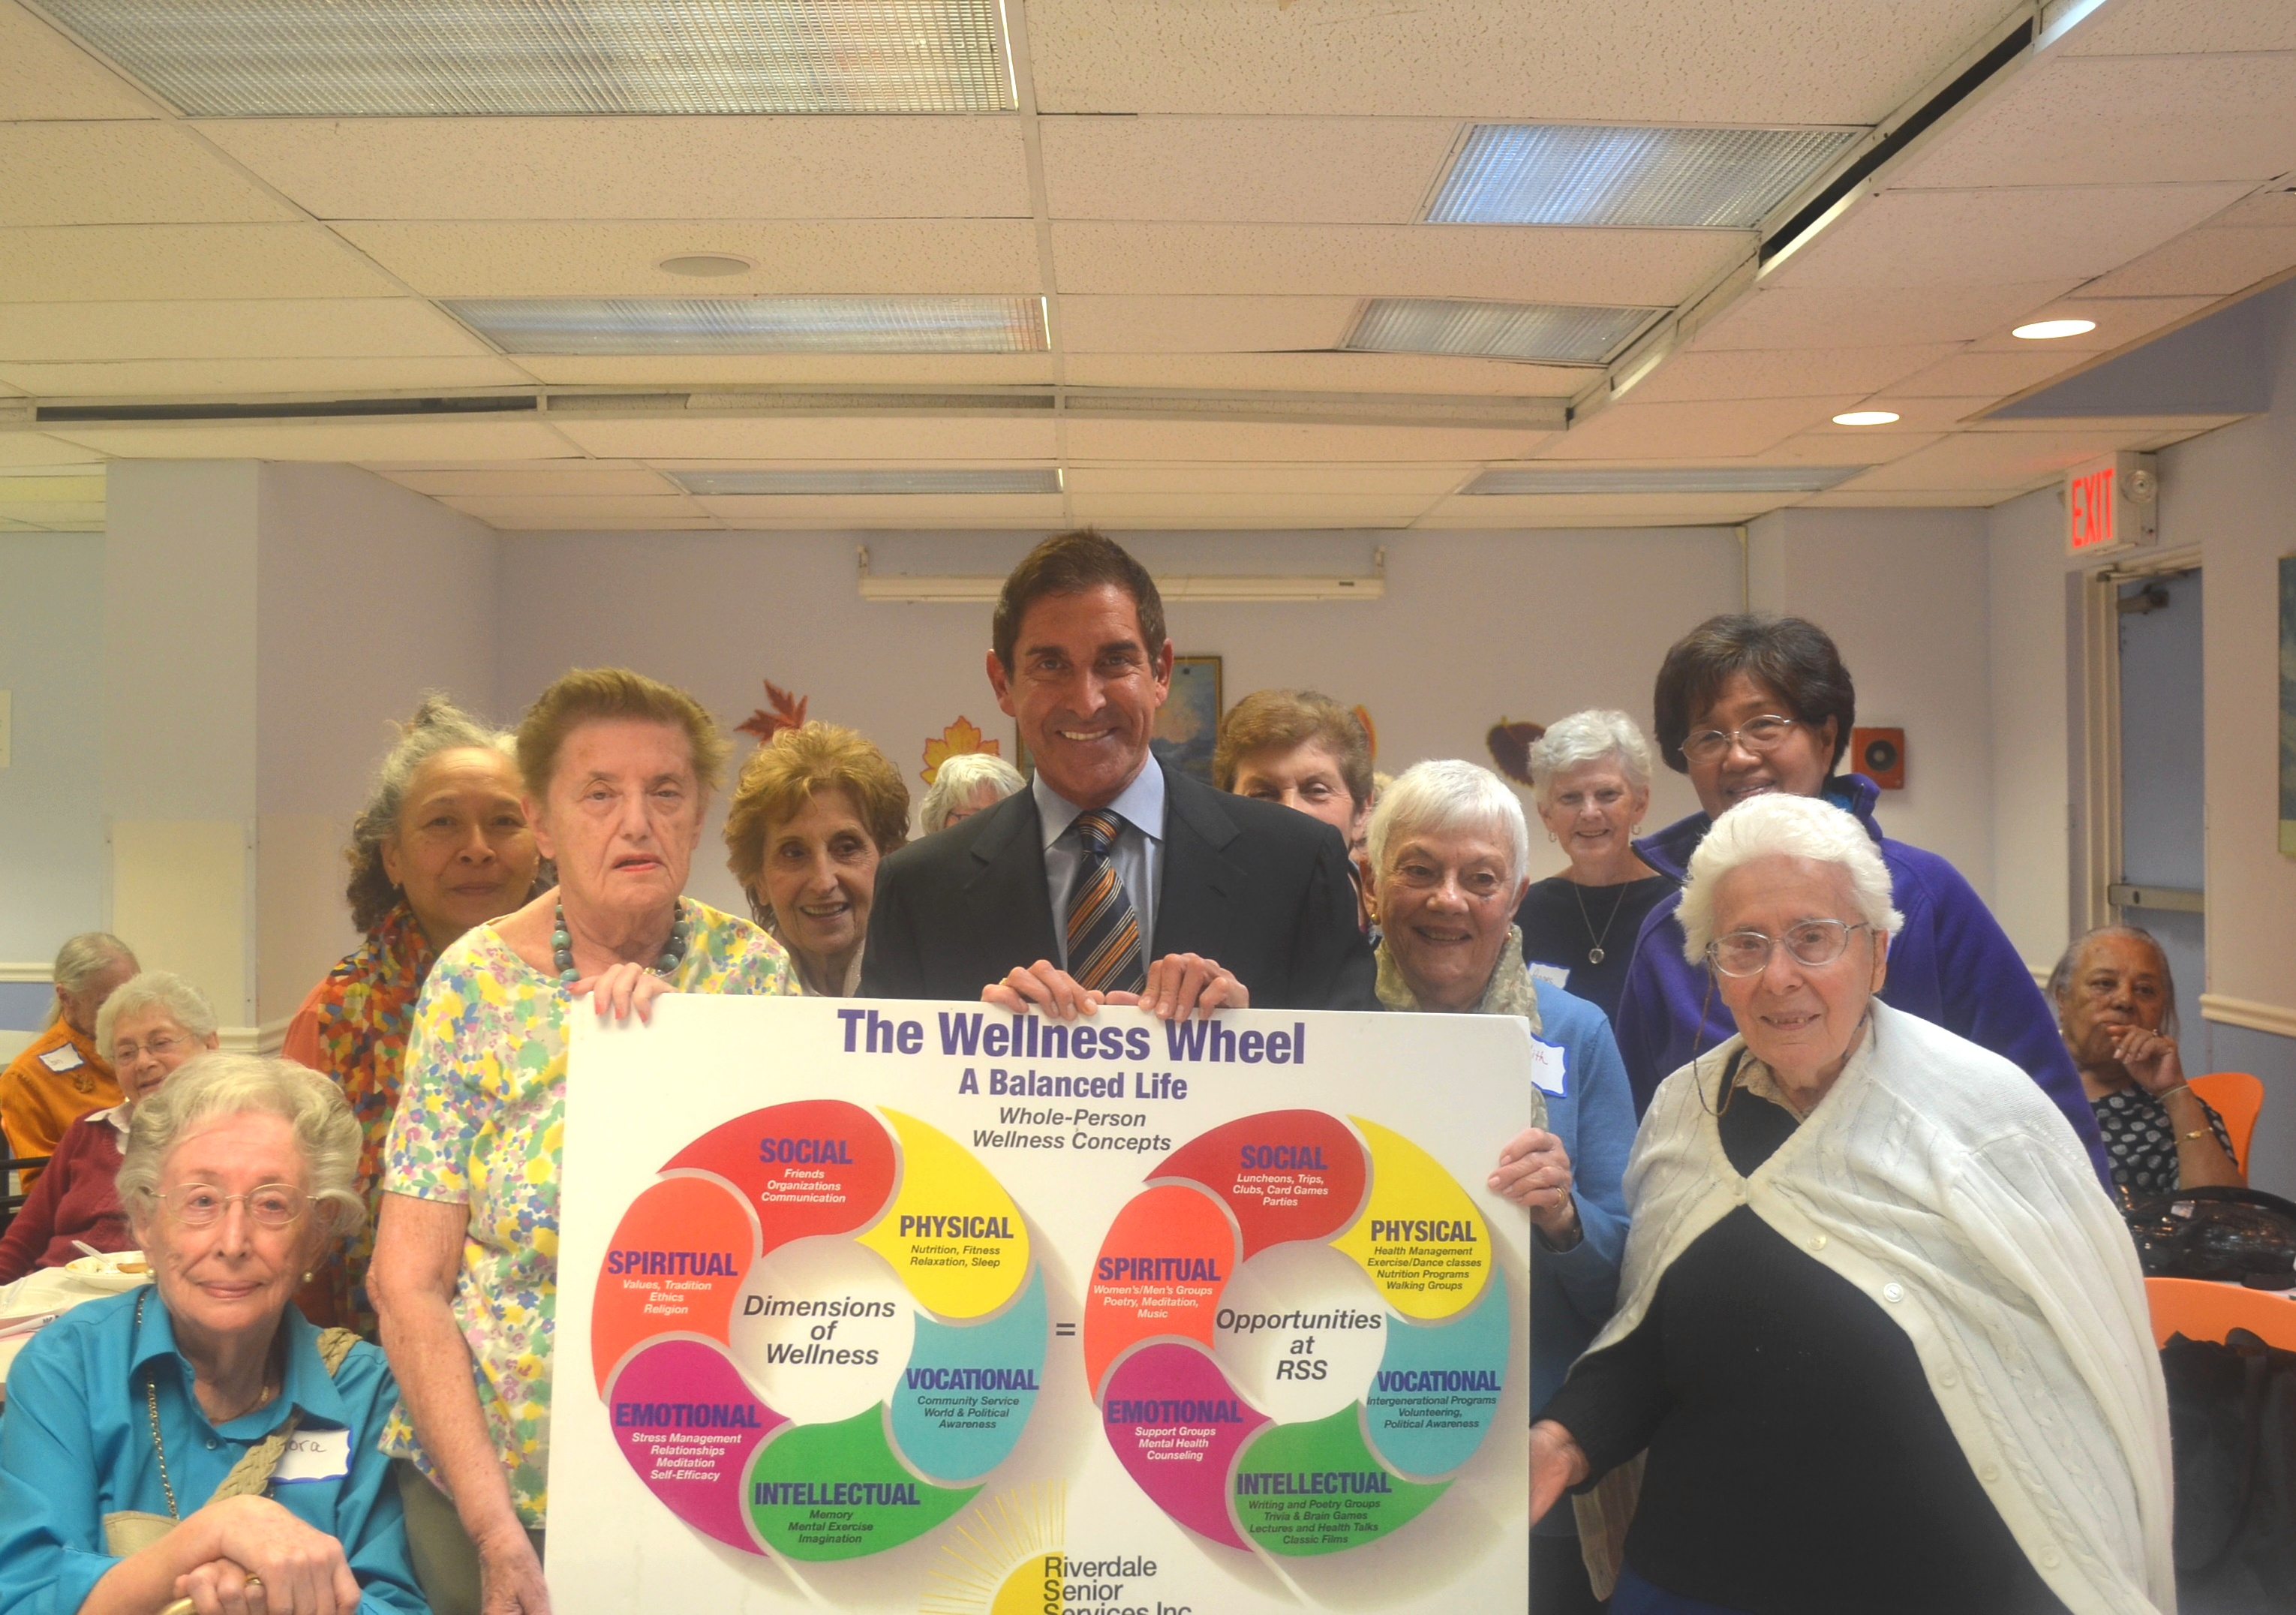 Senator Klein Announces $100,000 in State Funding for Bronx Seniors Health & Wellness Program